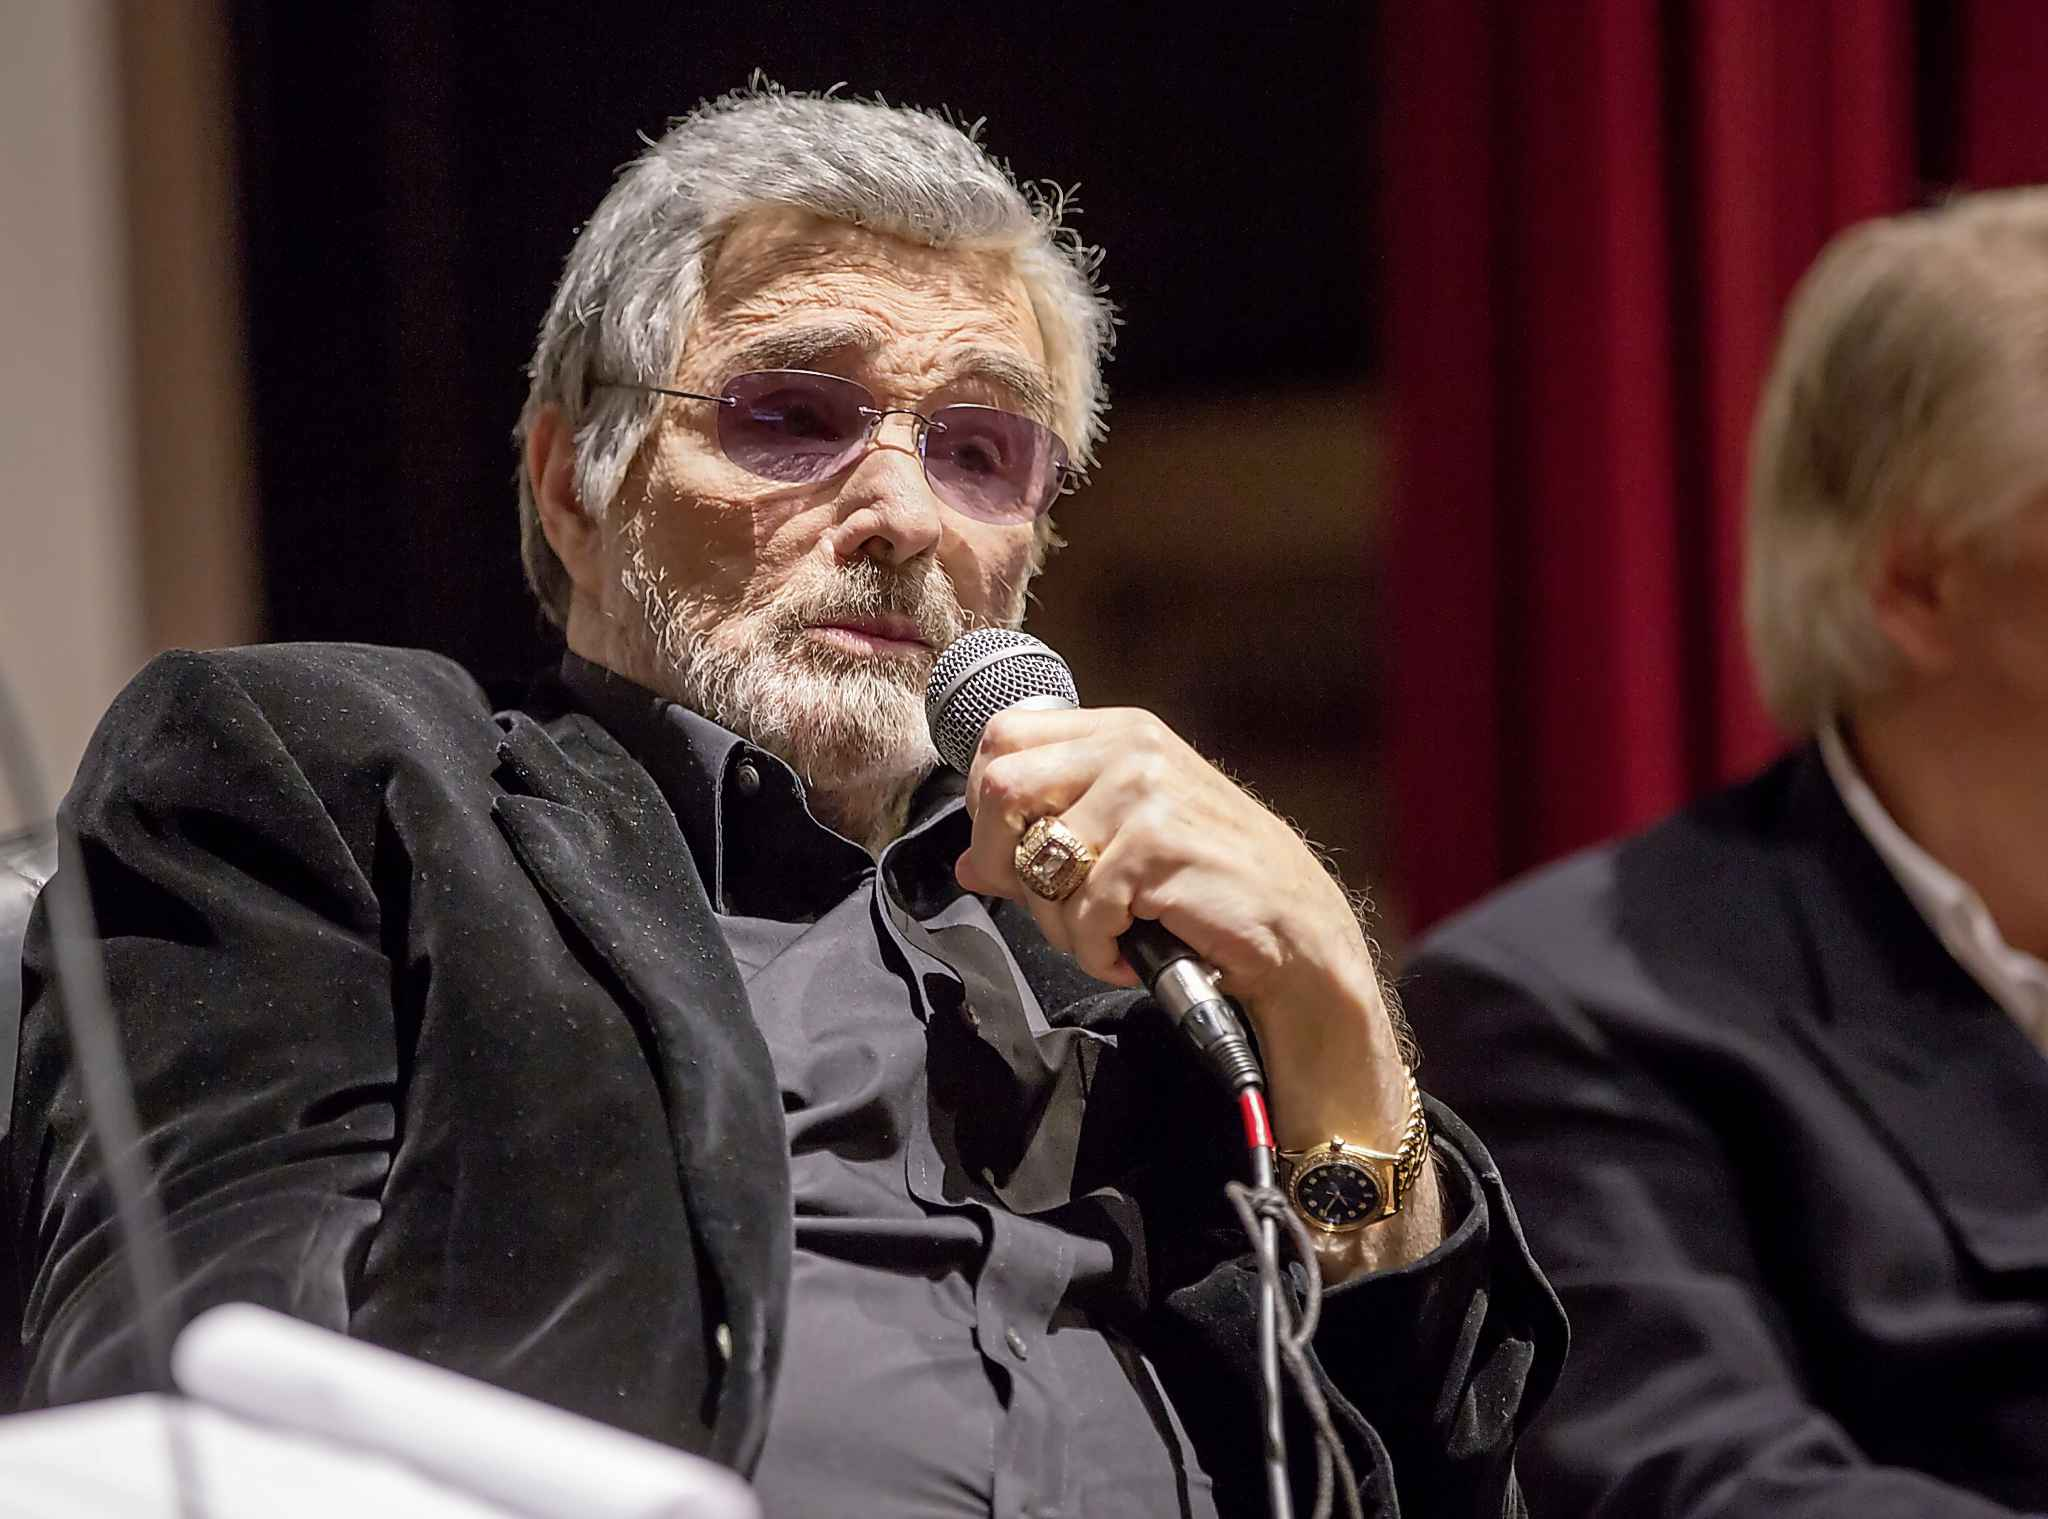 """In this Thursday, Nov. 17, 2016, photo provided by the Florida Keys News Bureau, actor Burt Reynolds answers questions during a highlight event of the Key West Film Festival in Key West, Fla. The festival honored Reynolds with its Golden Key Career Achievement Award and screened the documentary """"The Bandit"""" that explores the making of Reynolds' classic comedy motion picture """"Smokey & The Bandit."""" (Larry Blackburn/Florida Keys News Bureau via AP)"""